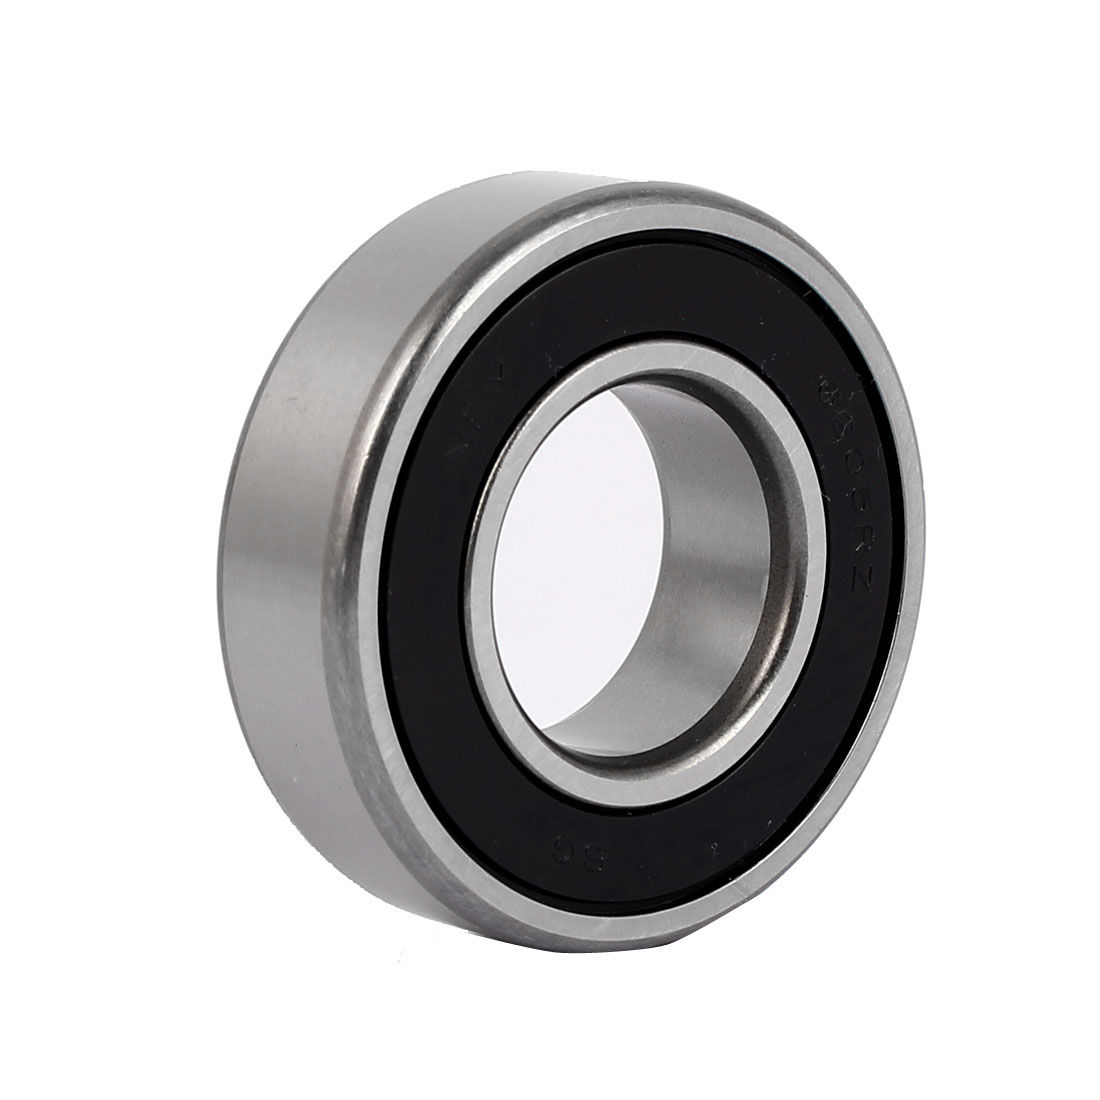 RZ6205 52mmx25mmx15mm Single Row Deep Groove Shielded Ball Bearing